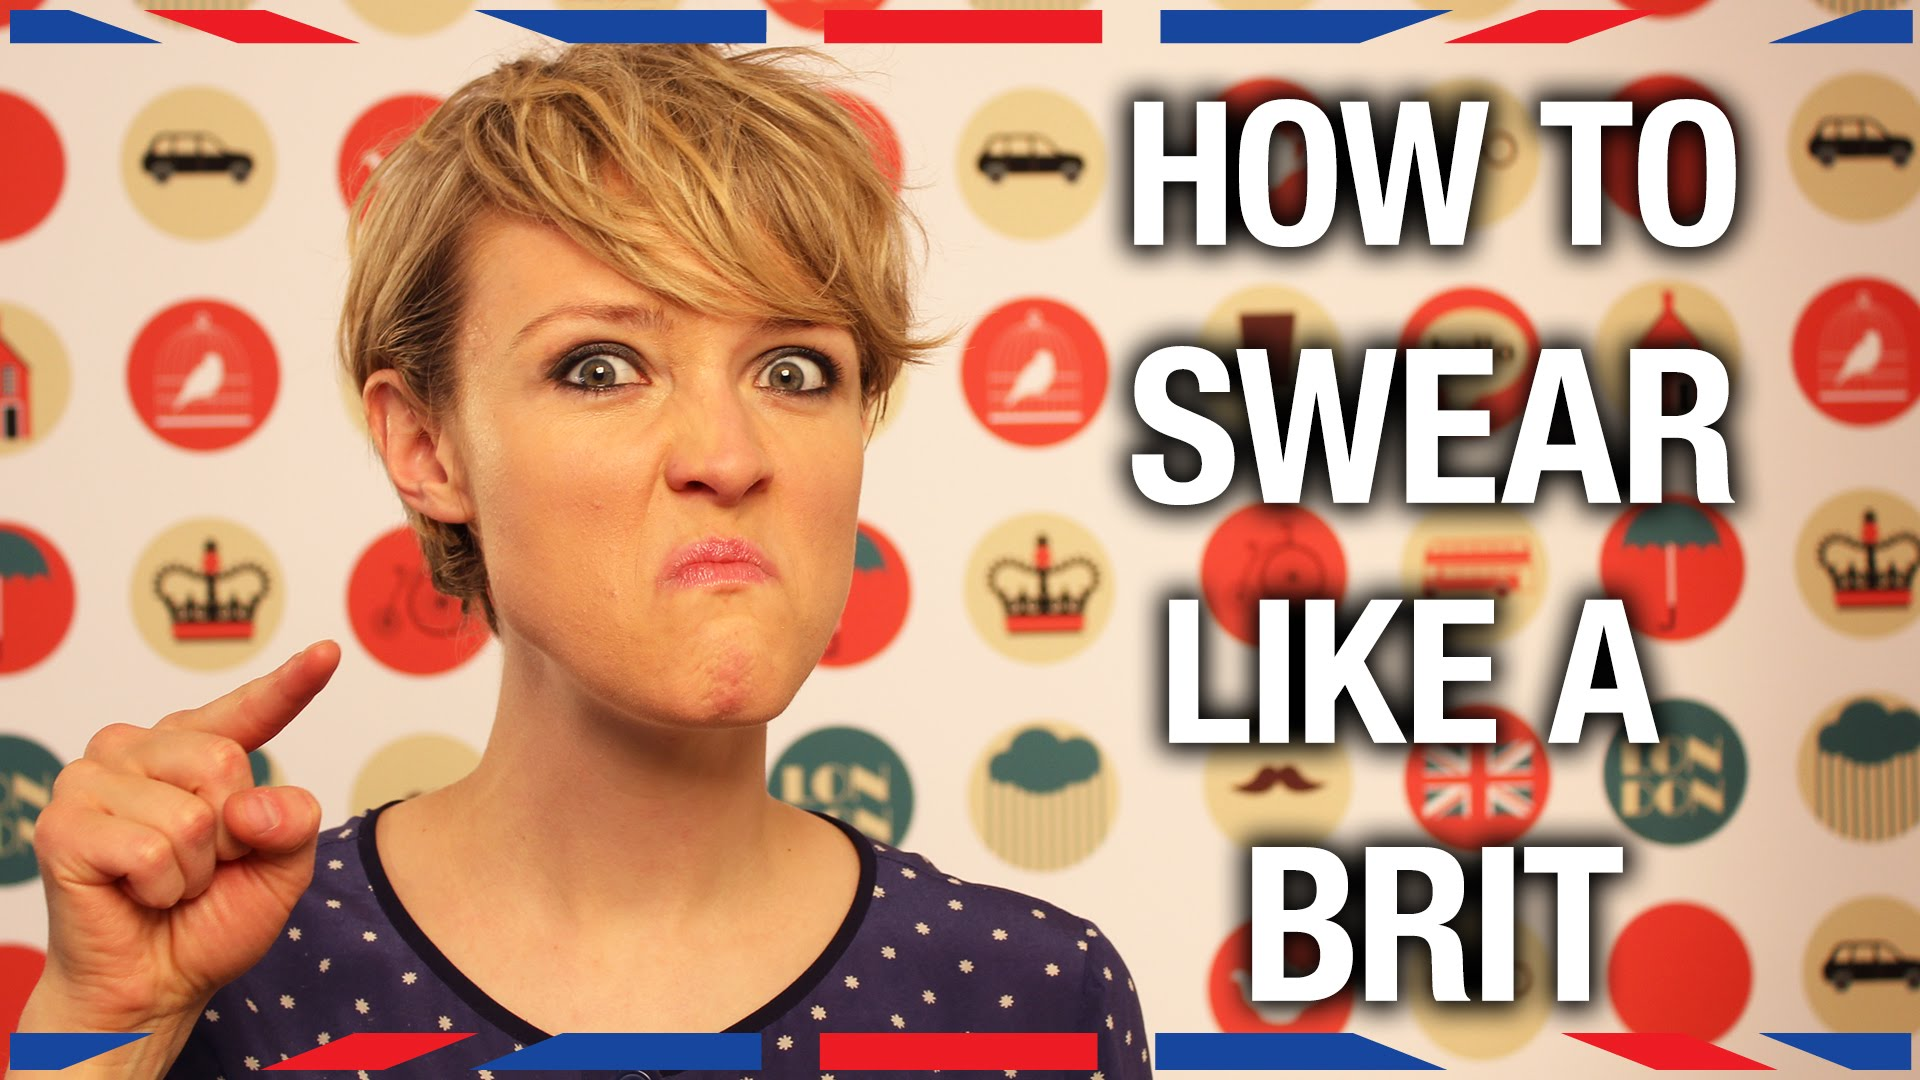 A Quick Lesson on How to Swear Like a Brit